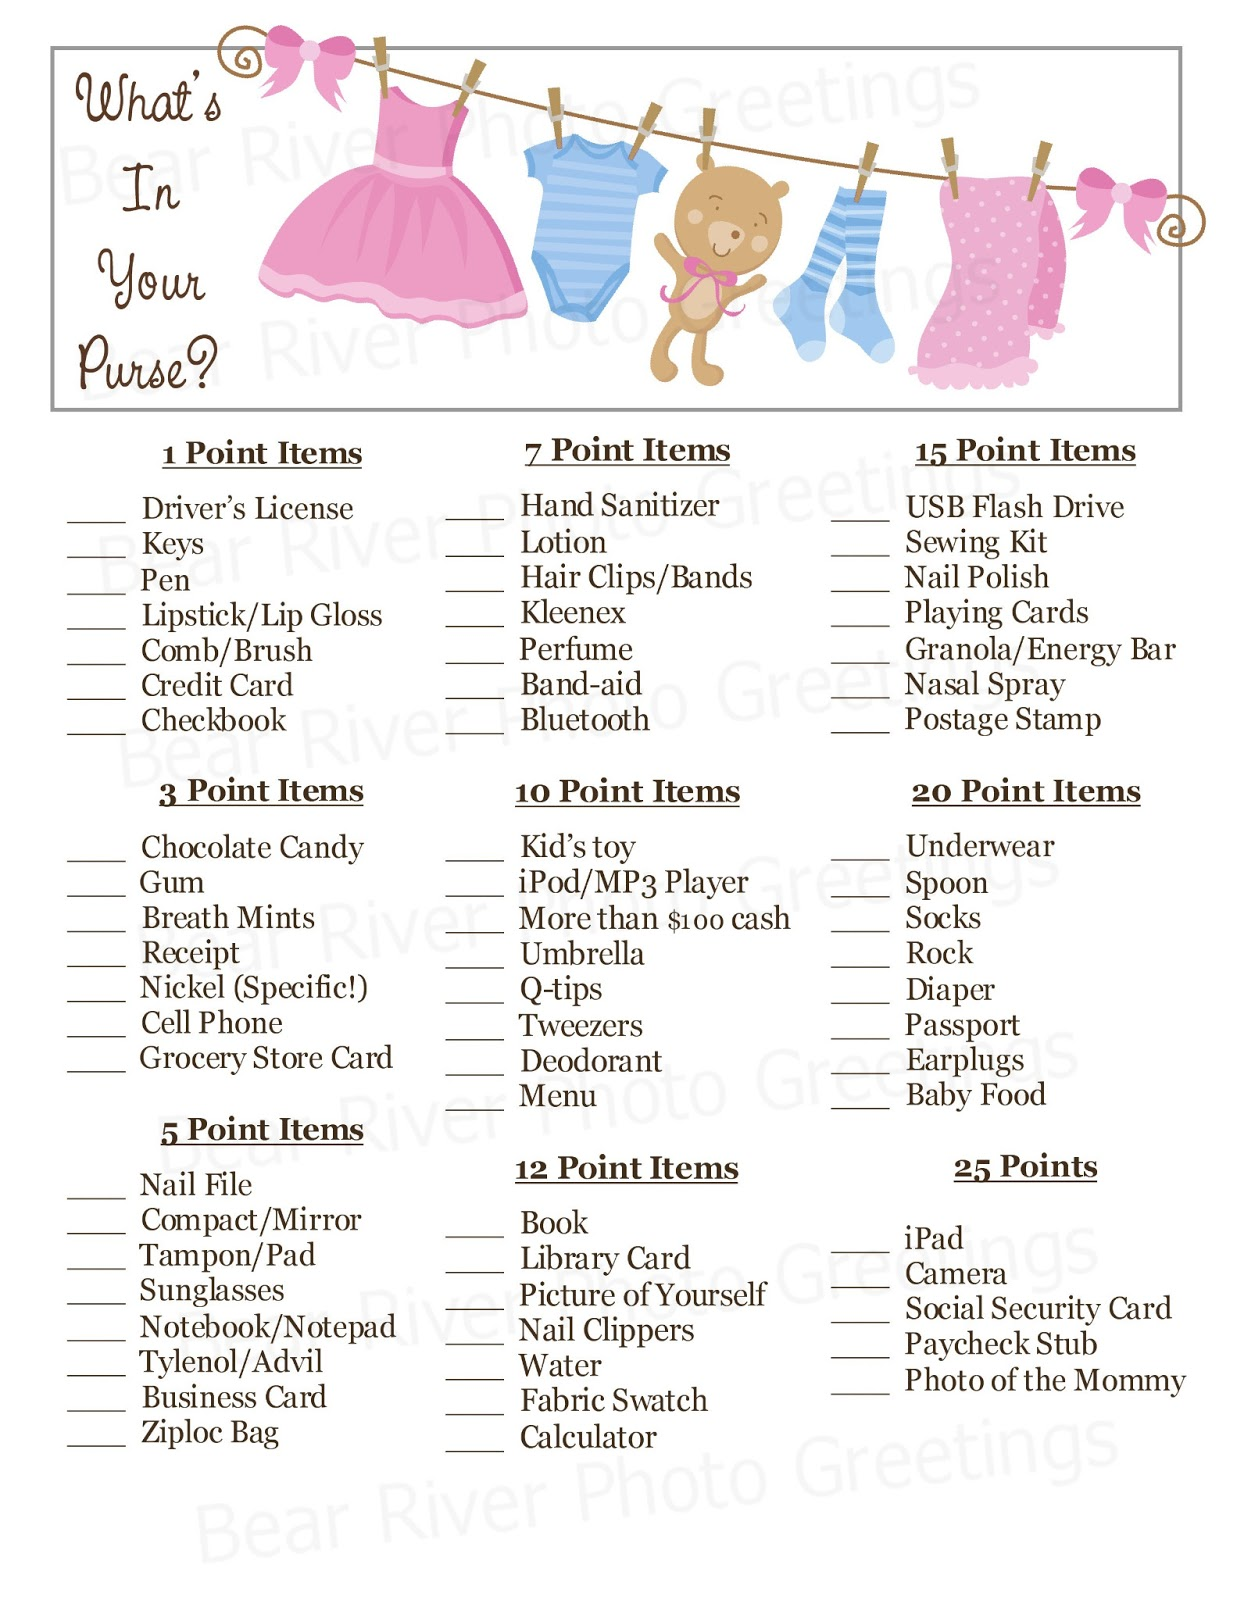 picture relating to What's in Your Purse Free Printable known as Undergo River Picture Greetings: 2013